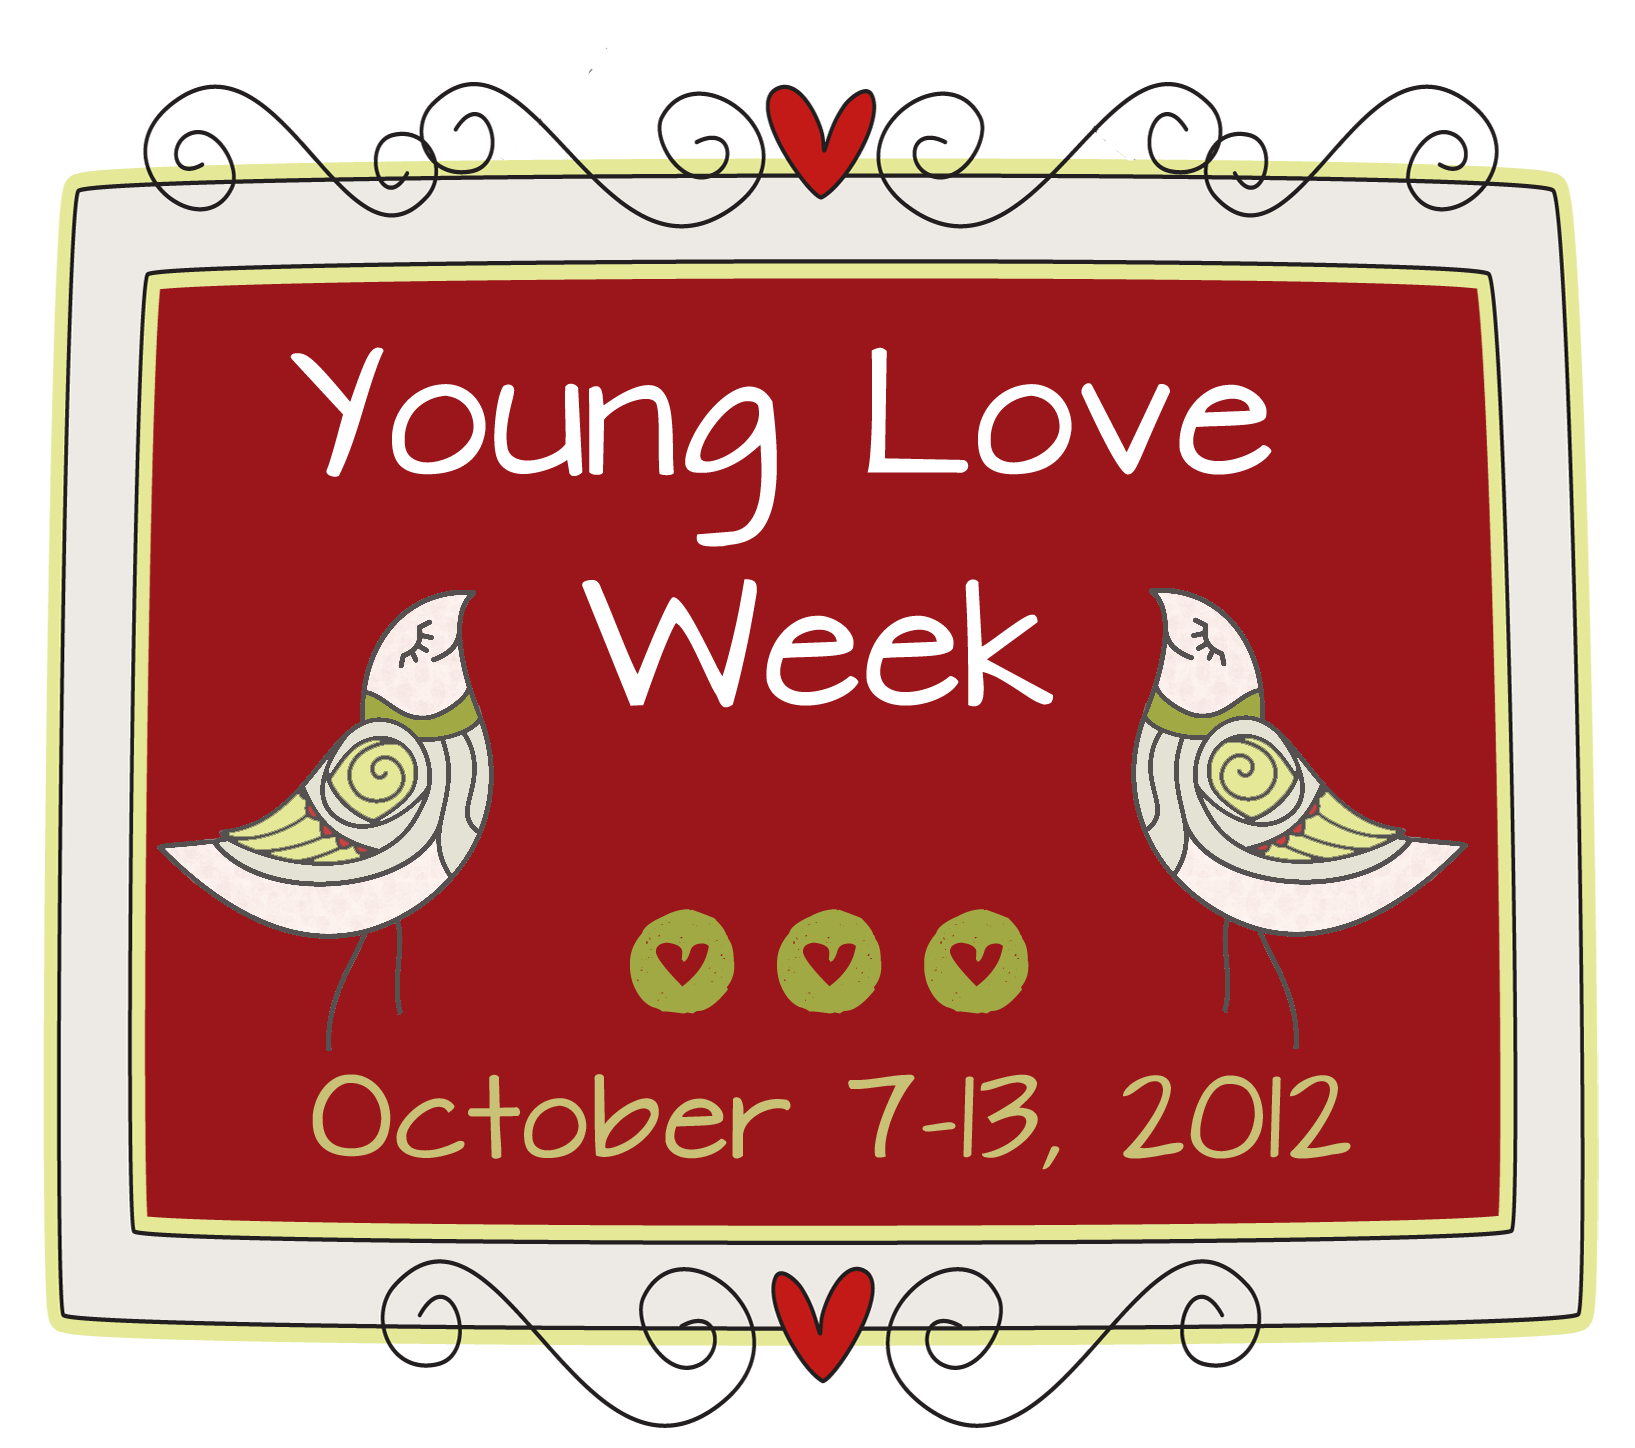 One Week Until Young Love Week